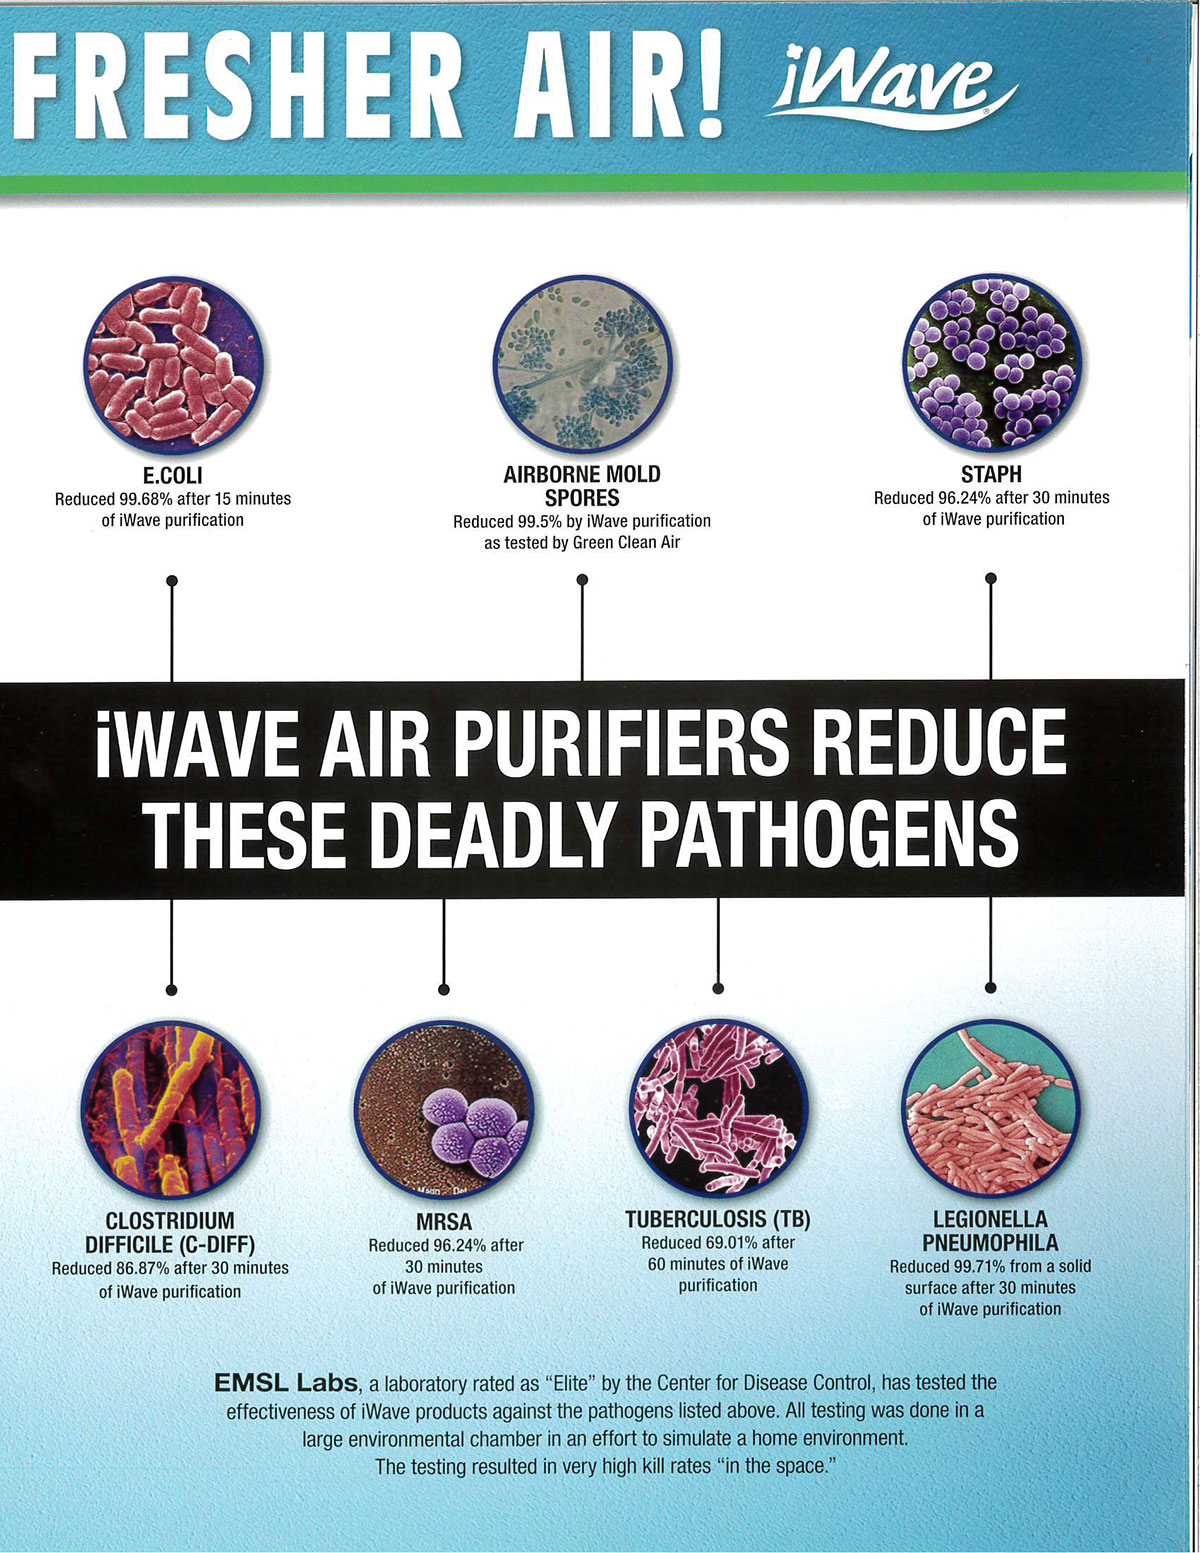 iWave purifiers reduces deadly pathogens